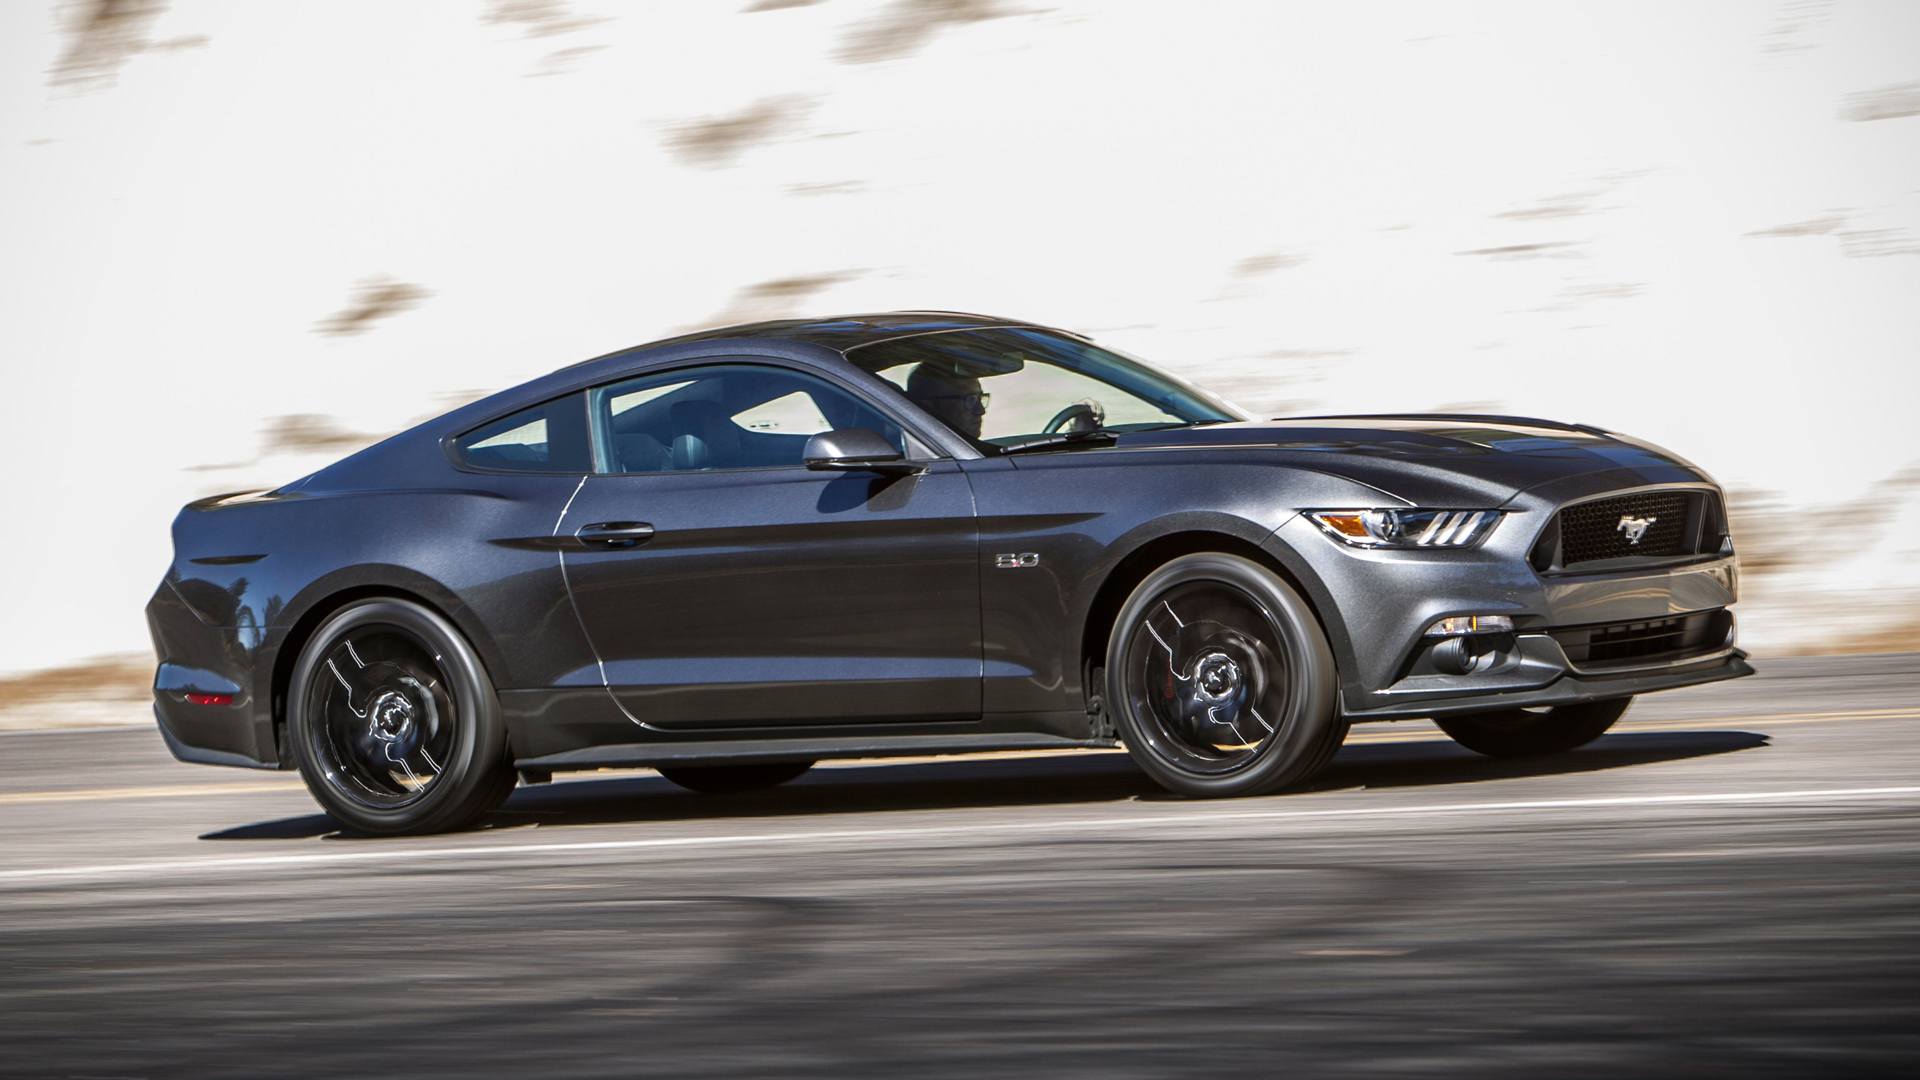 Ford Mustang GT 2015 Wallpapers   HD HdCoolWallpapersCom 1920x1080